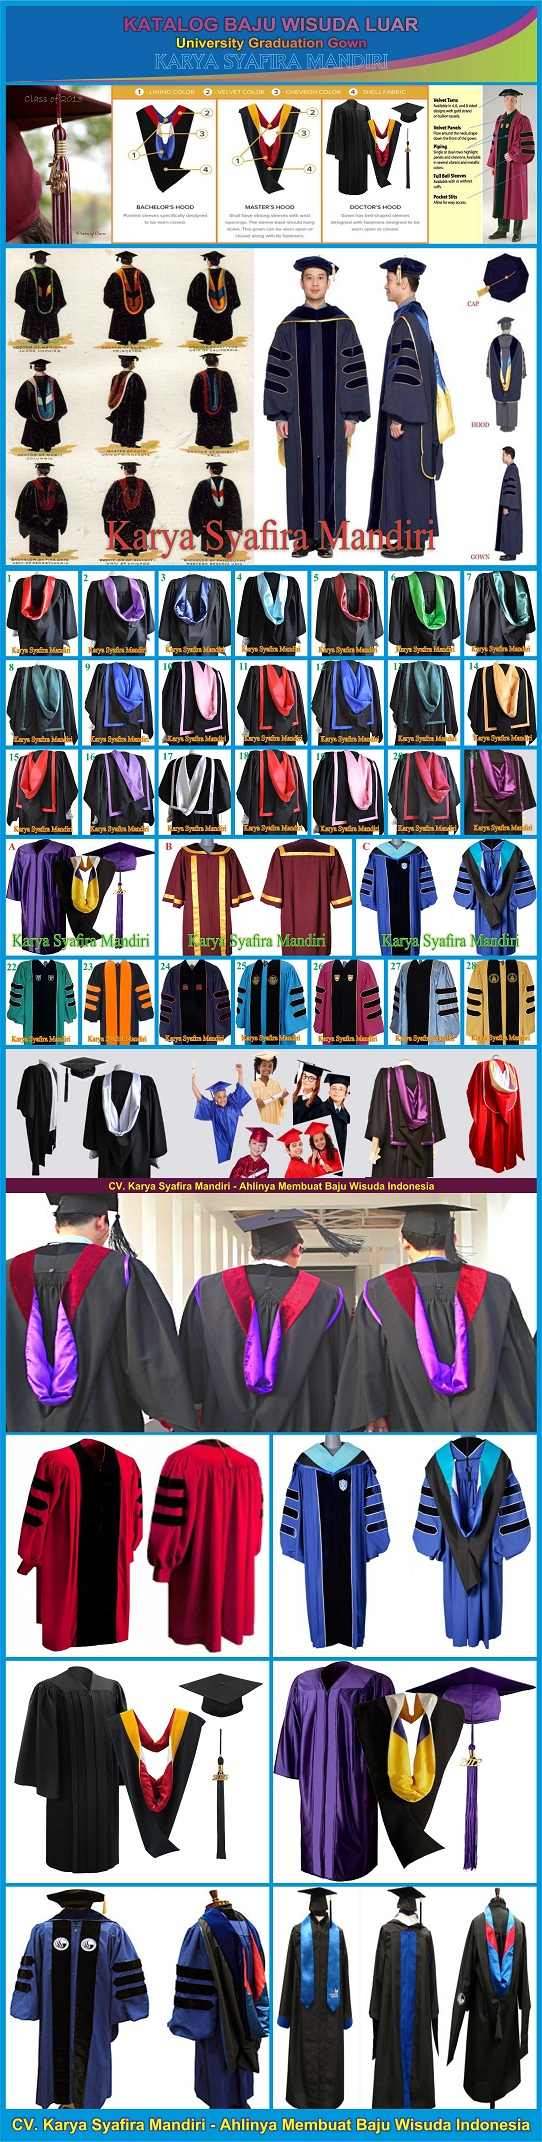 university-graduation-gowns-11